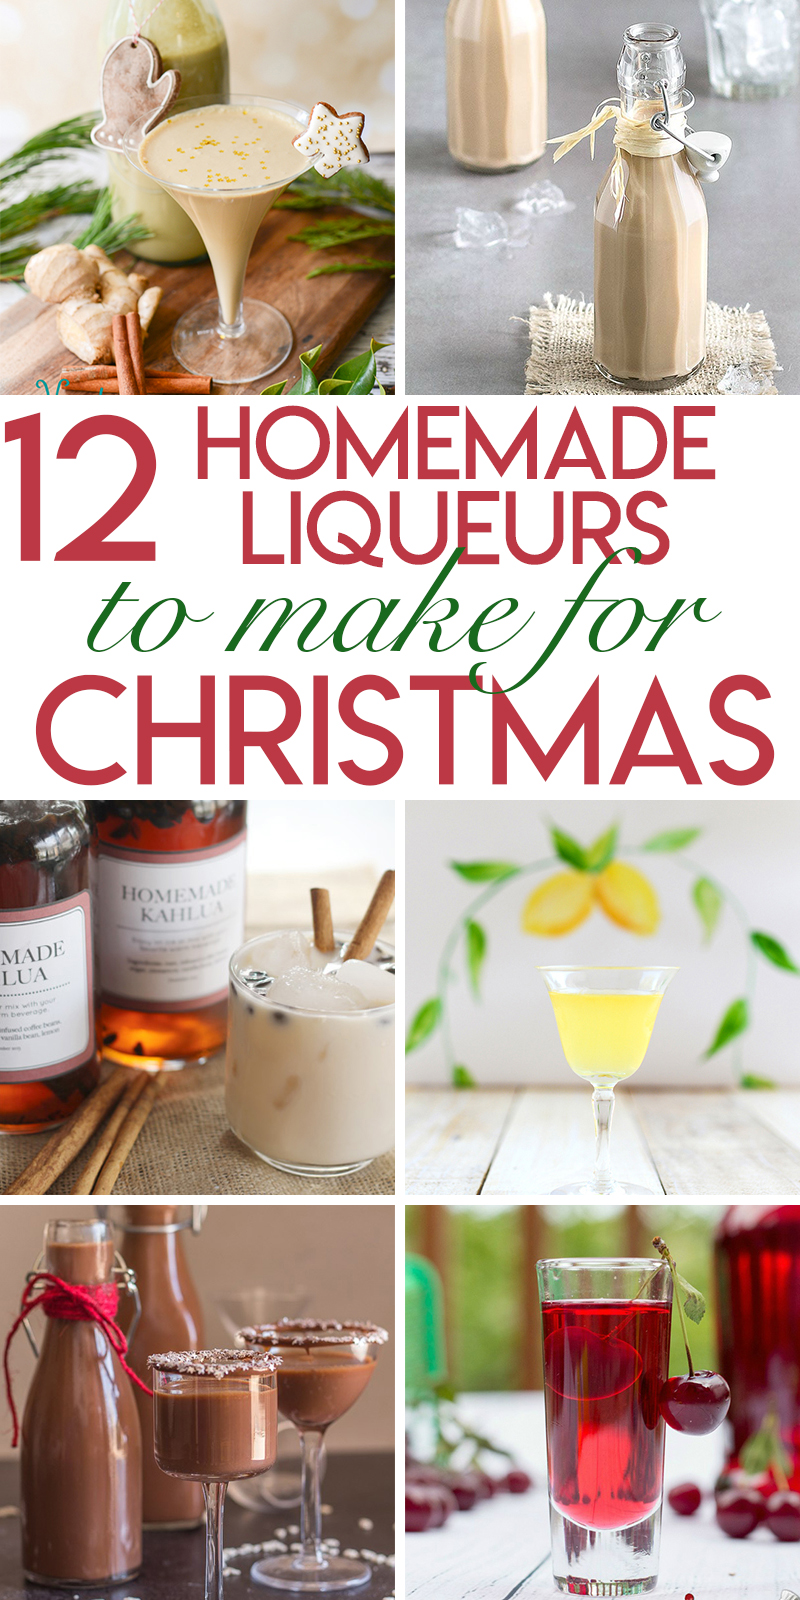 12 liqueurs to make and give as Christmas gifts.